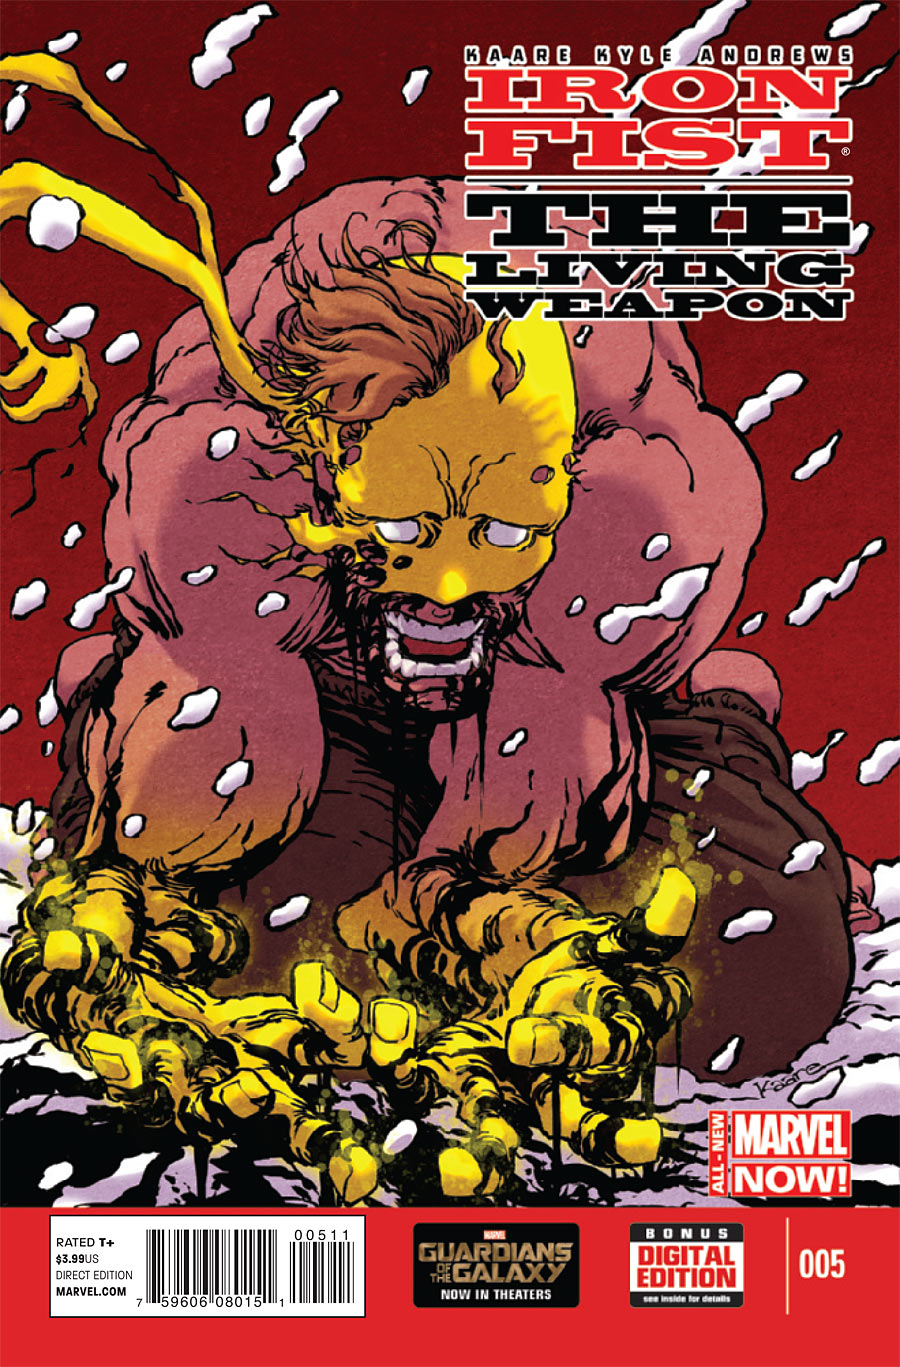 Iron Fist: The Living Weapon Vol.1 #5